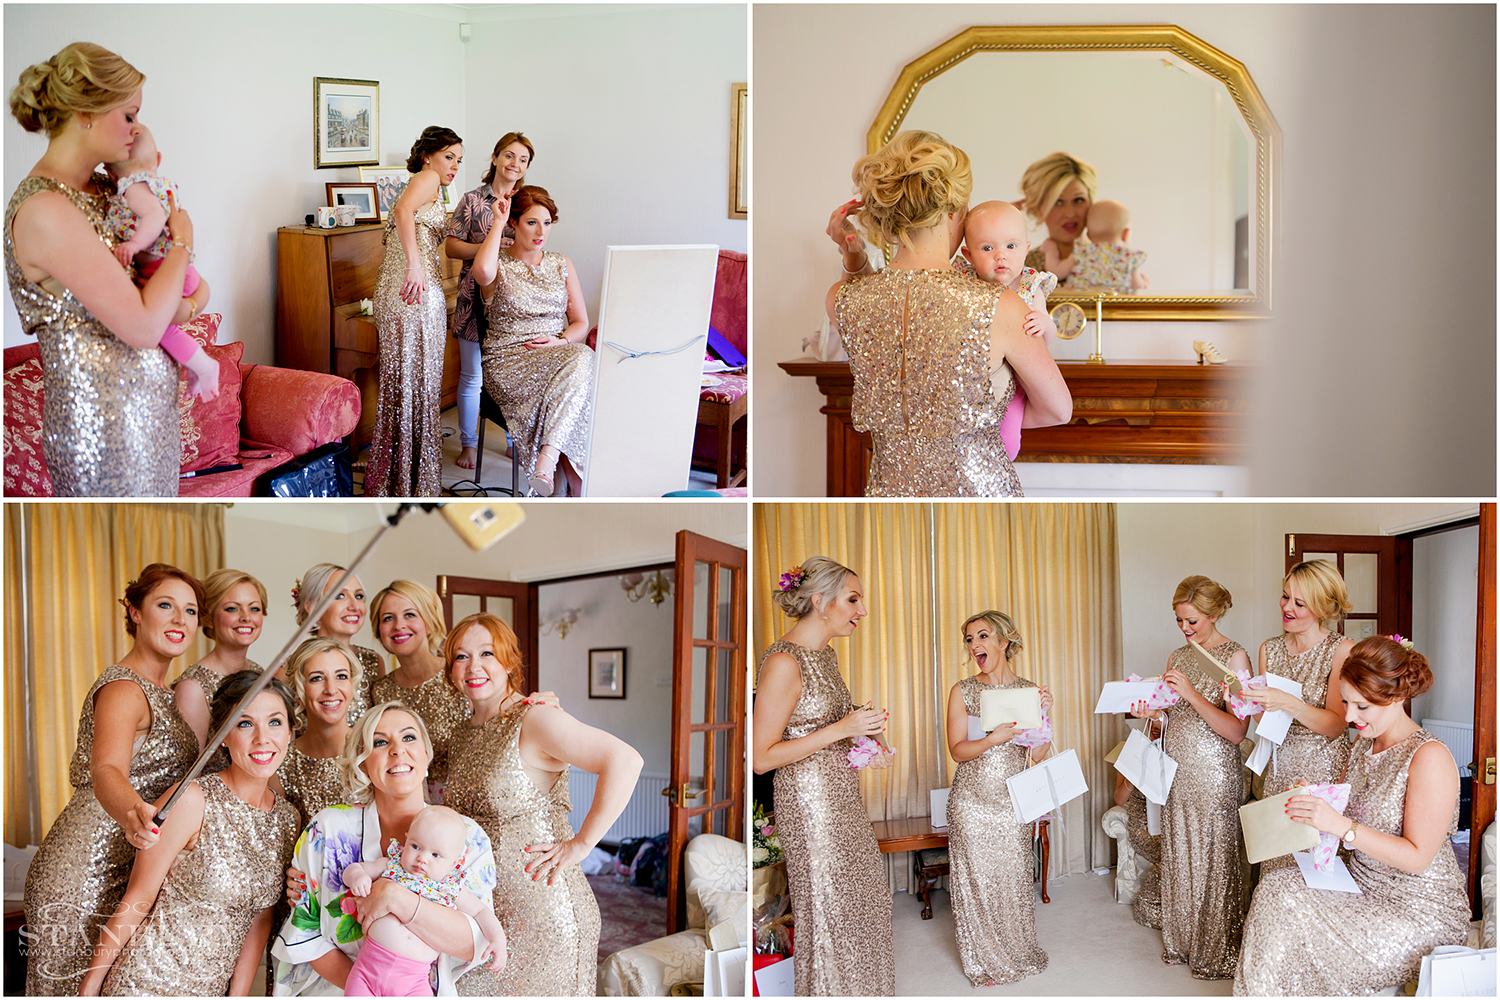 kilhey court wigan wedding photographers stanbury photography